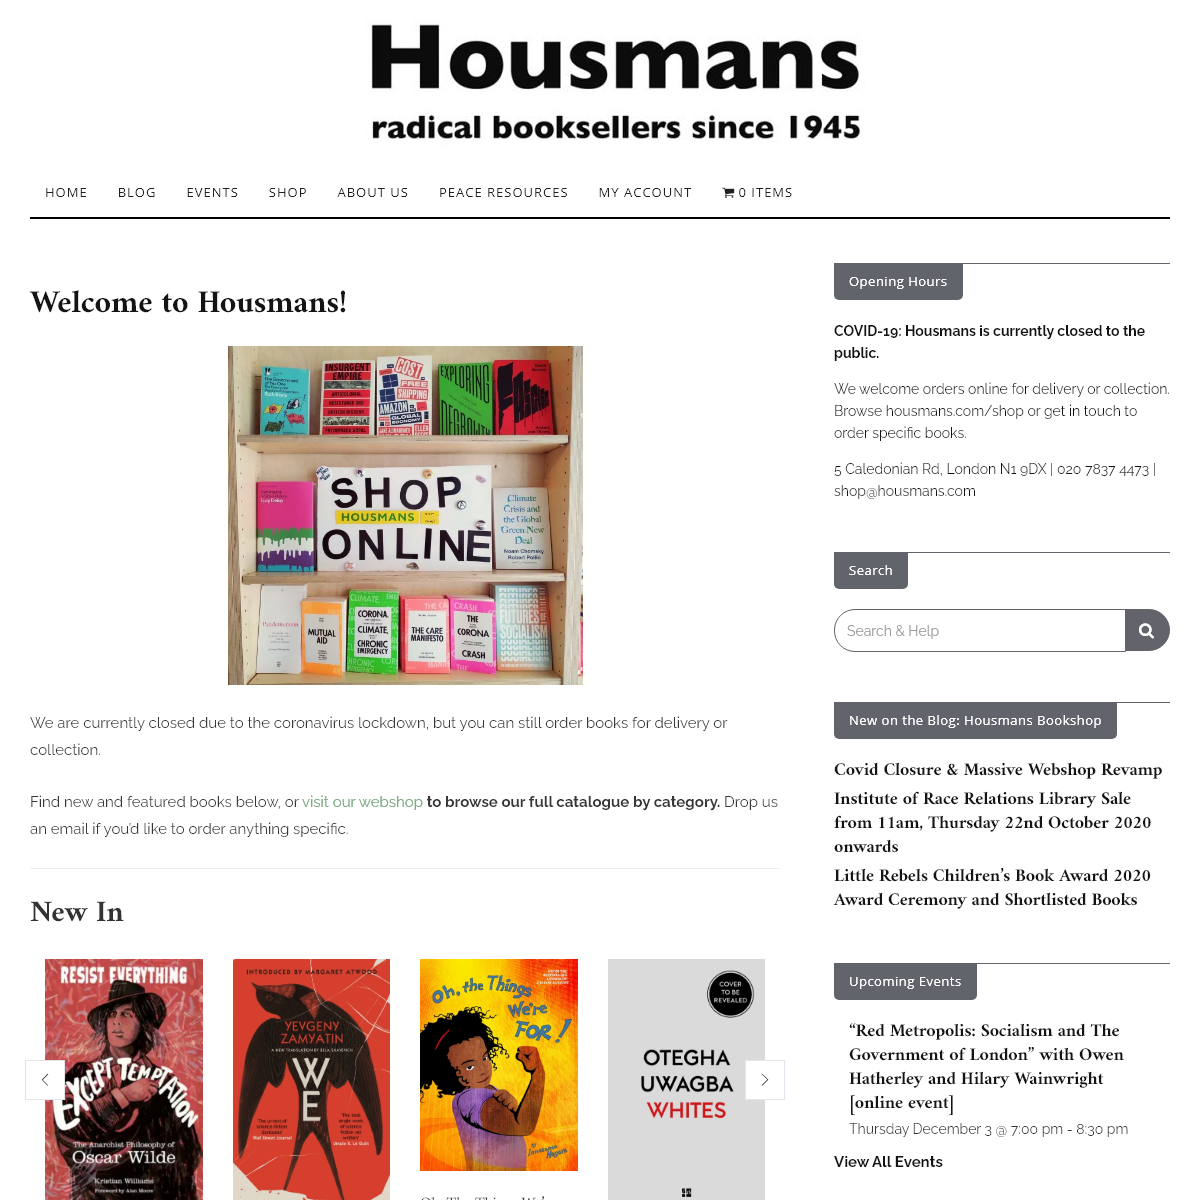 Housmans Bookshop – We are a not-for-profit bookshop, specialising in books, zines, and periodicals of radical interest and pr